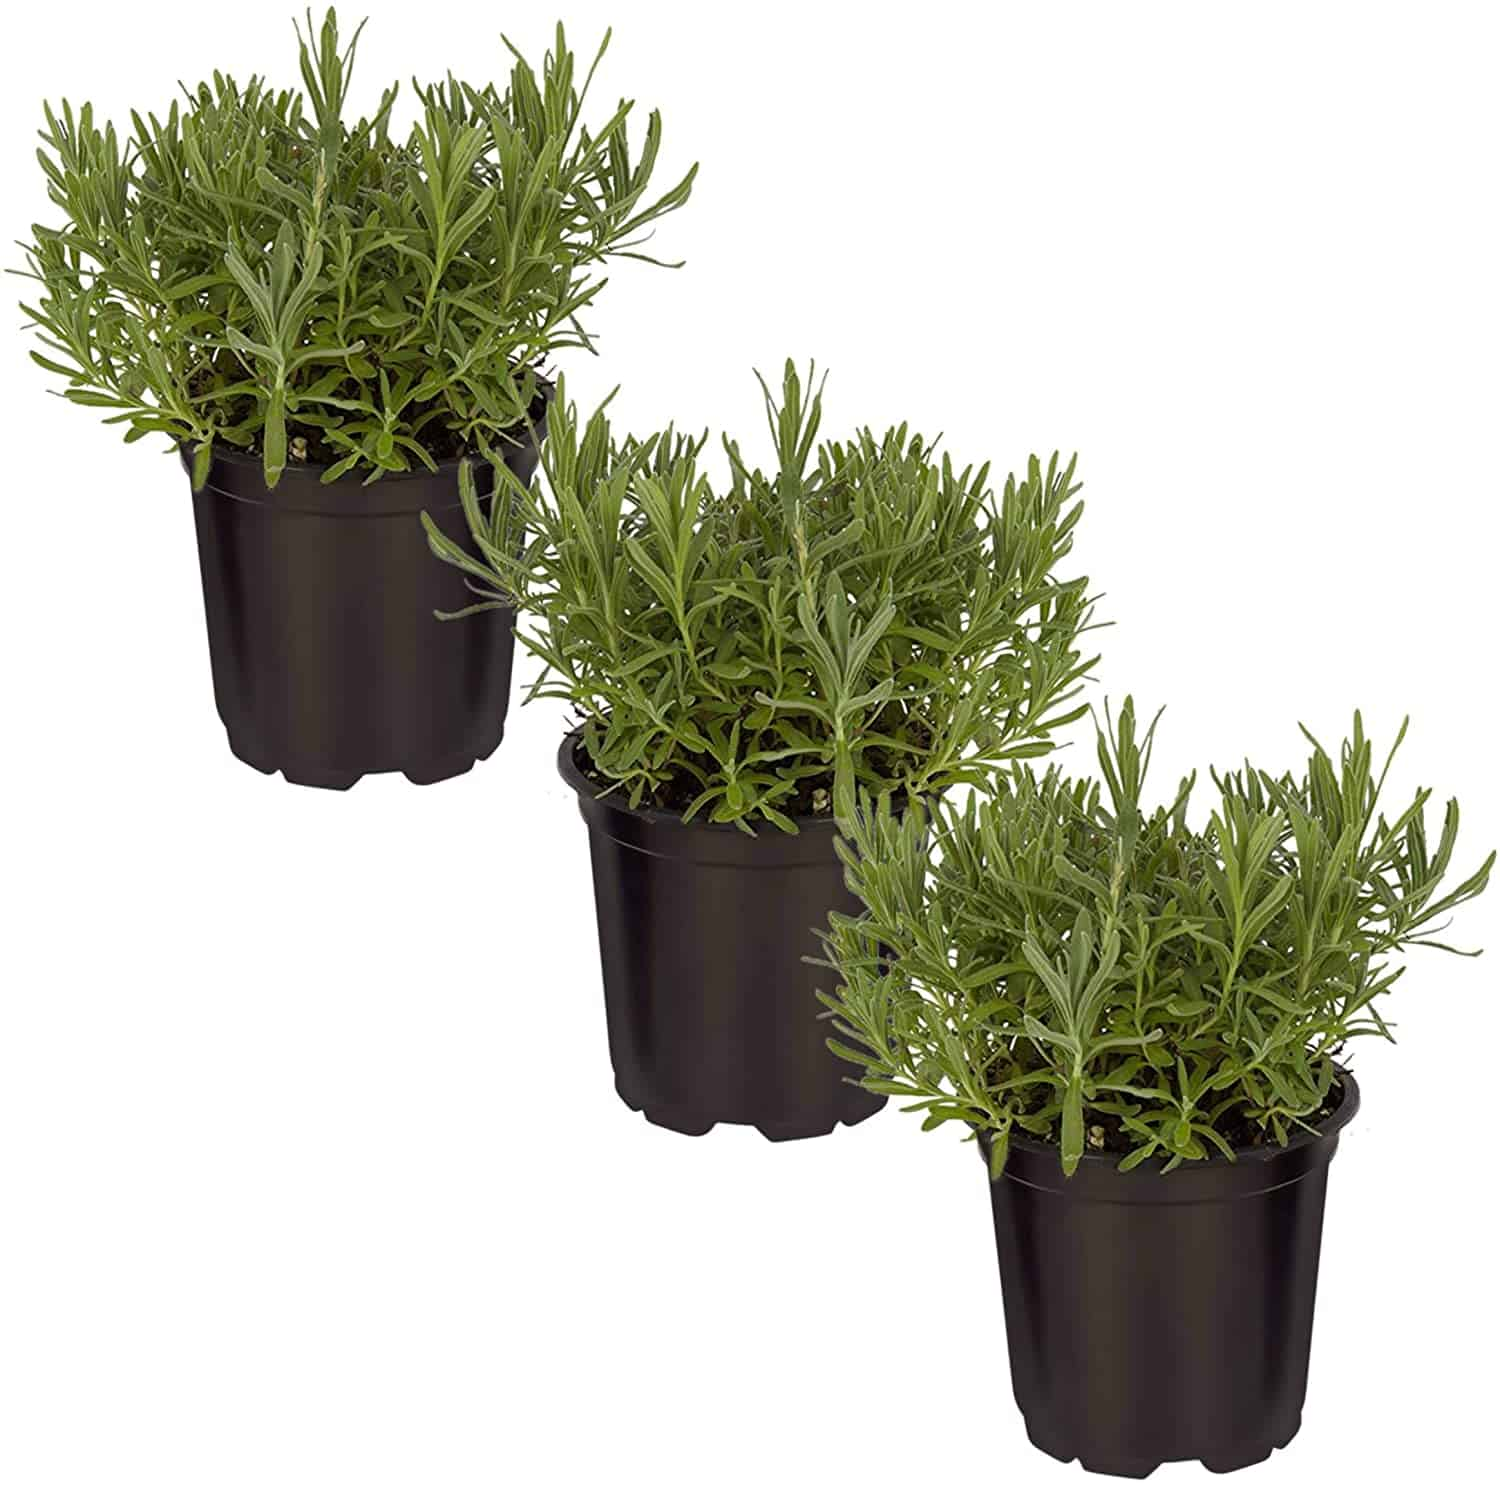 The Three Company Live Lavender Herb (3 Per Pack) Aromatic and Edible Plant, Improves Sleep and Relaxation, 4.5